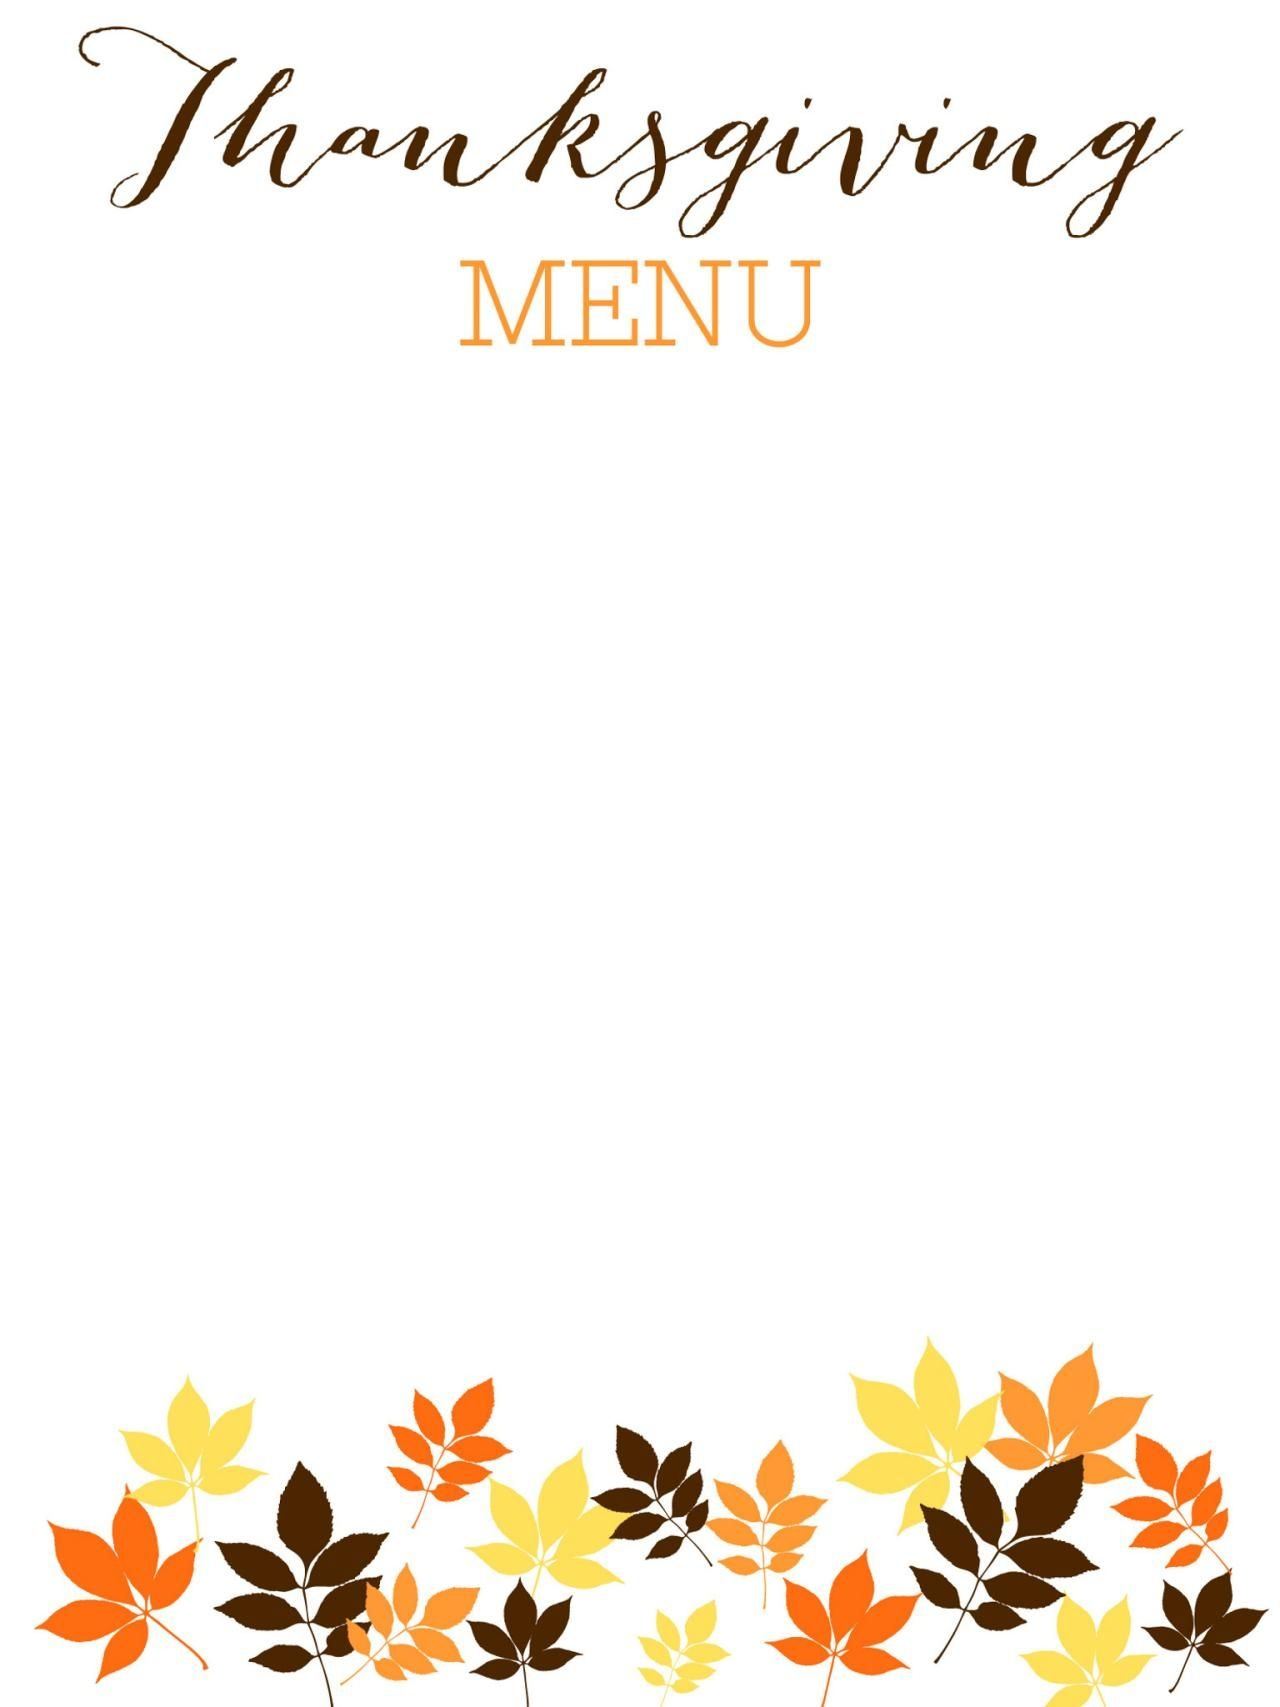 31 Printable (And Free!) Thanksgiving Templates   Examen Final - Free Printable Thanksgiving Menu Template